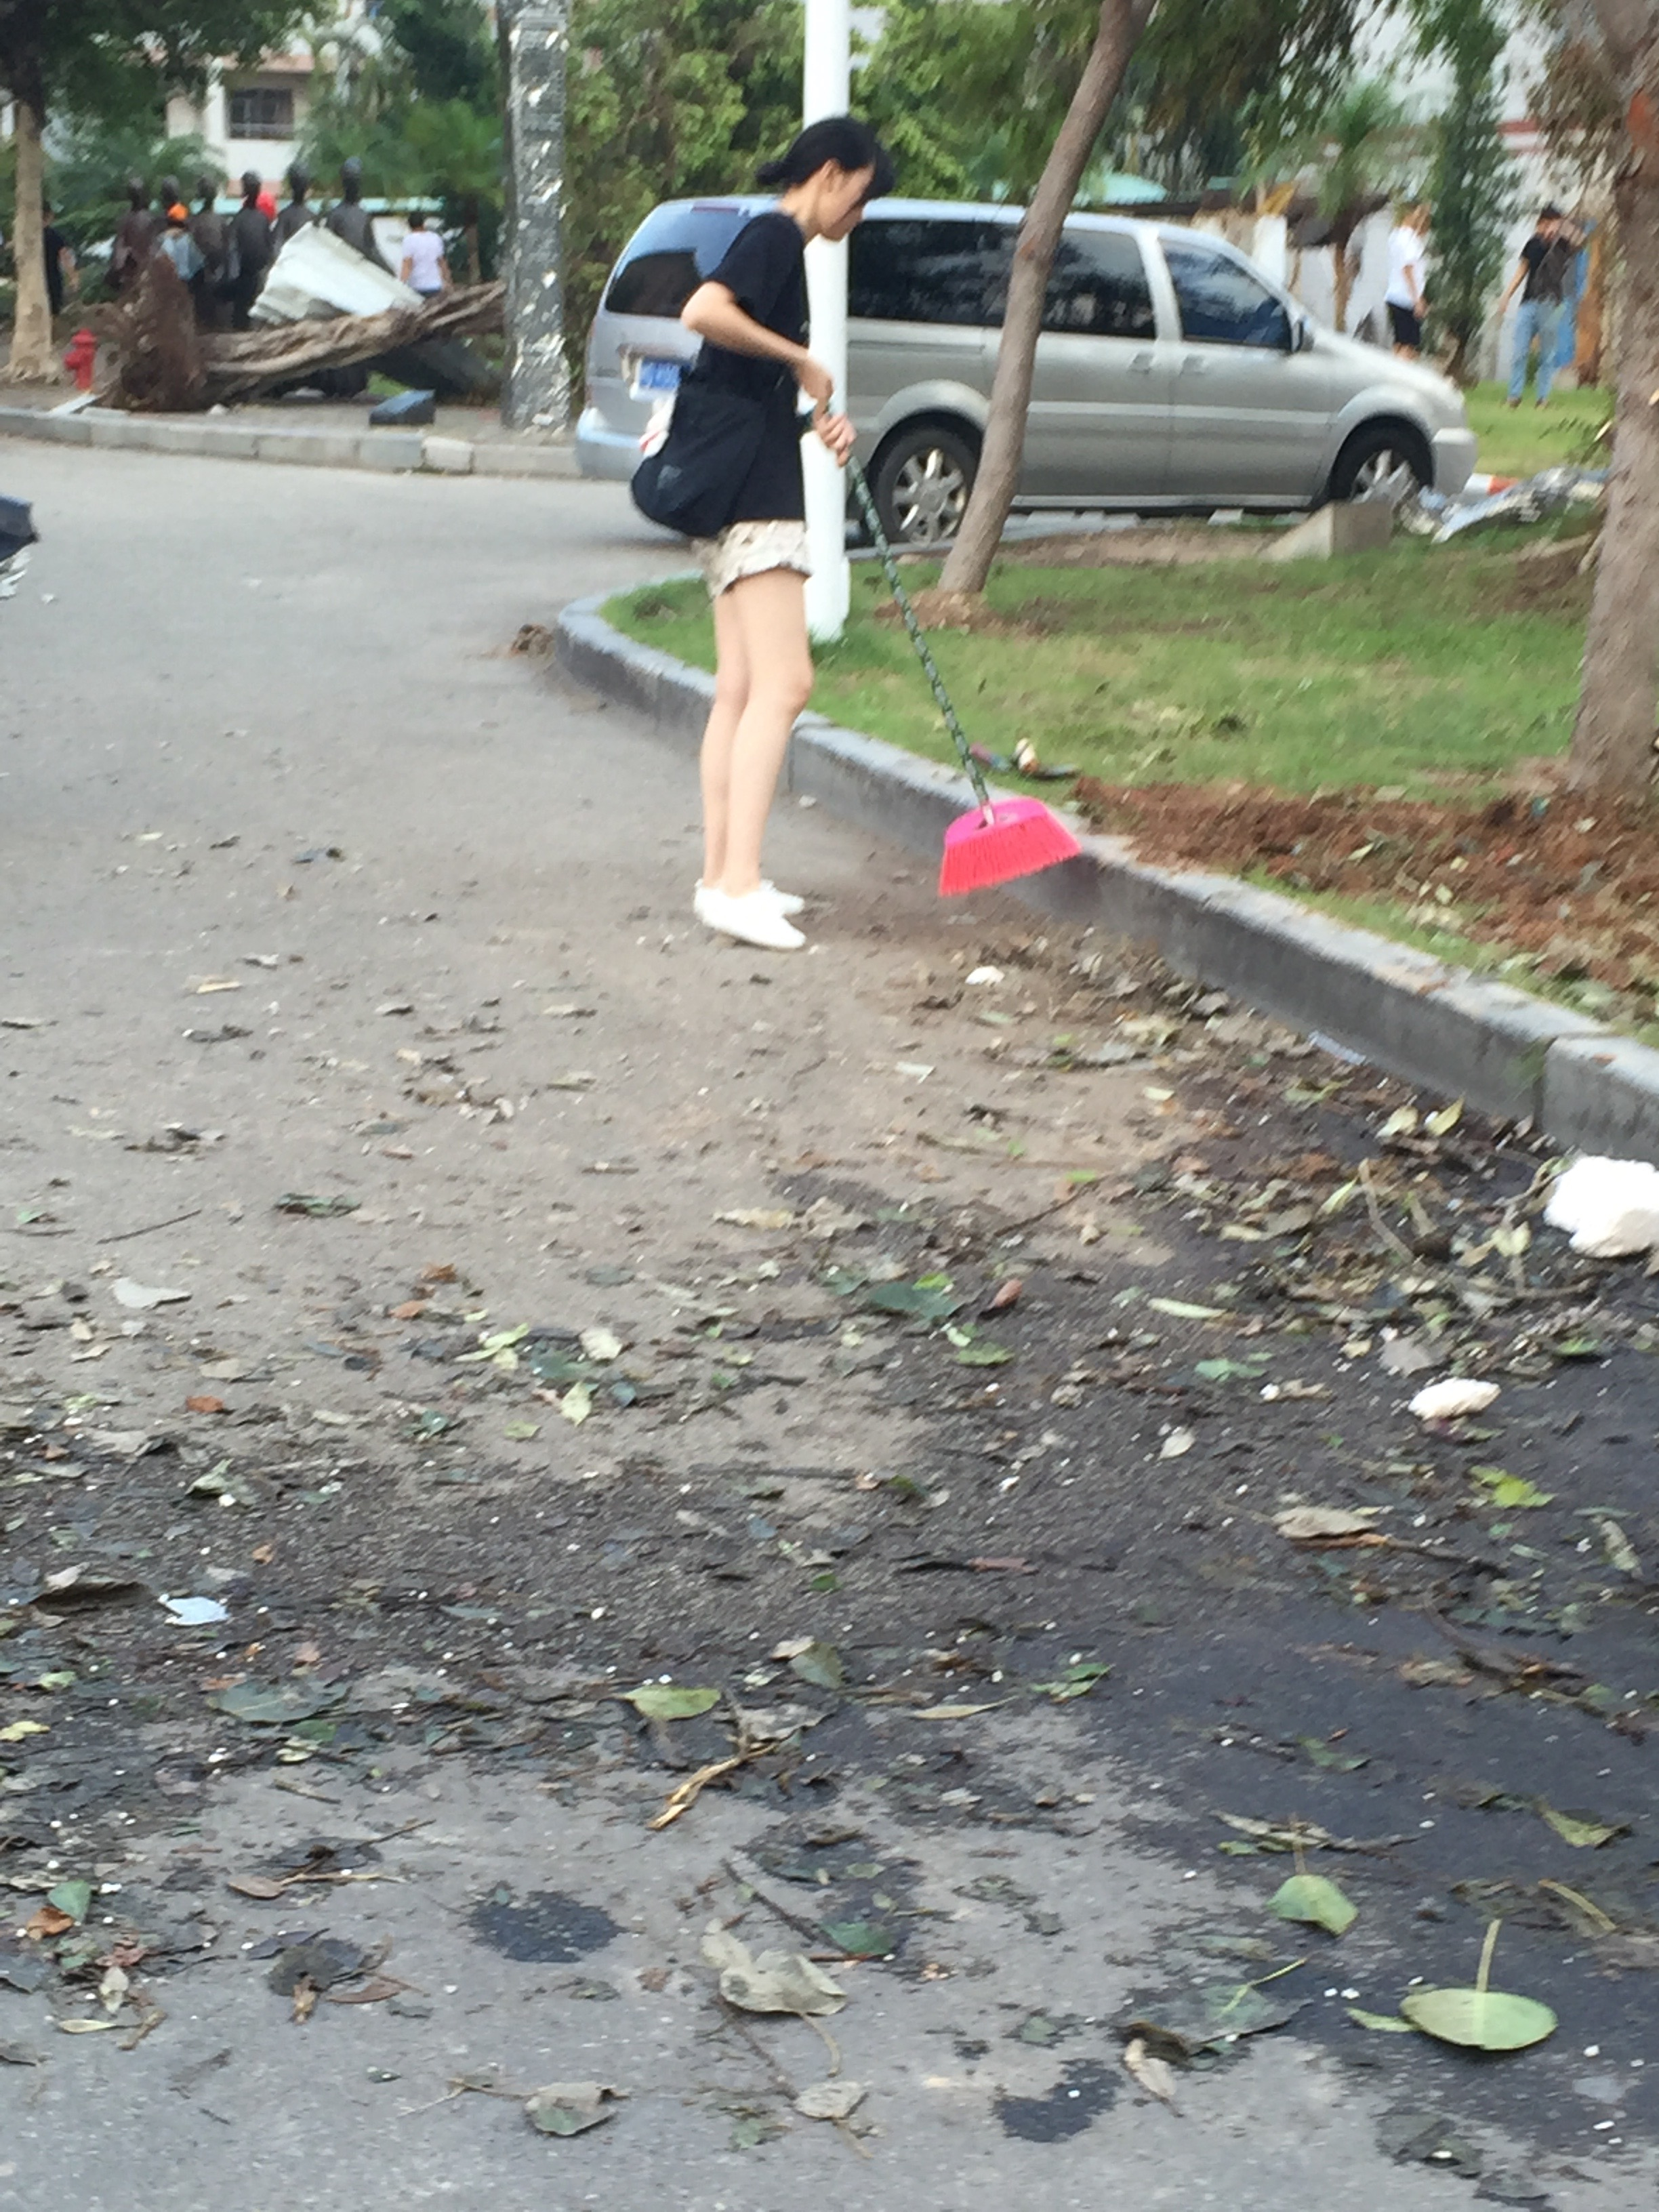 Clearly, some of the volunteers had no idea what to do, This girl had a broom and dustpan and was just lazily sweeping at a piece of muddy ground. She could have used a bit more direction I think.